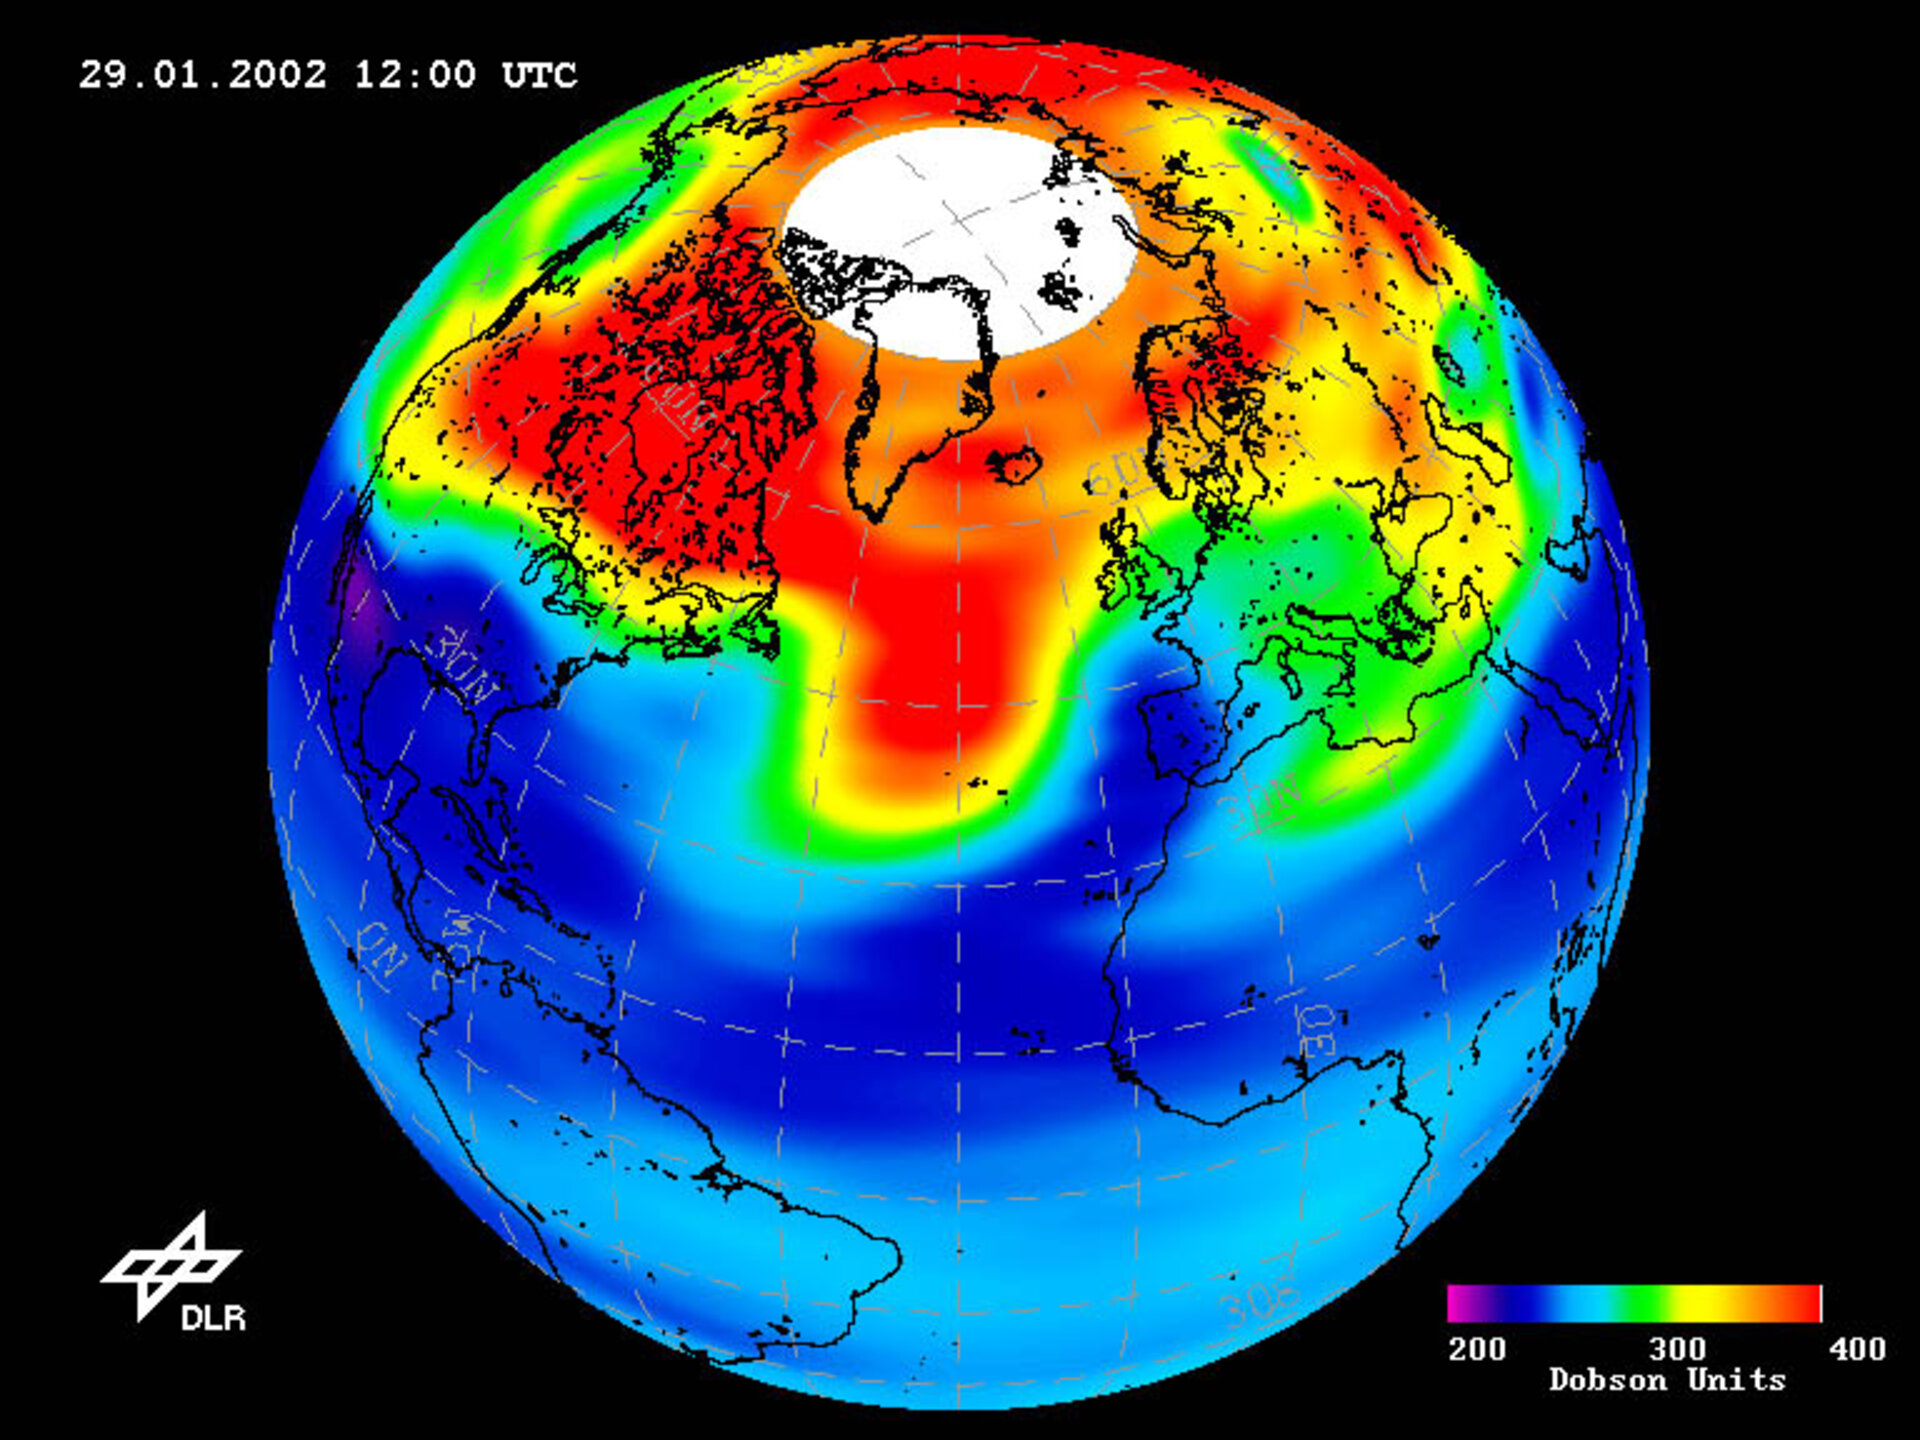 Low-ozone event over Northern Hemisphere on 29 January 2002